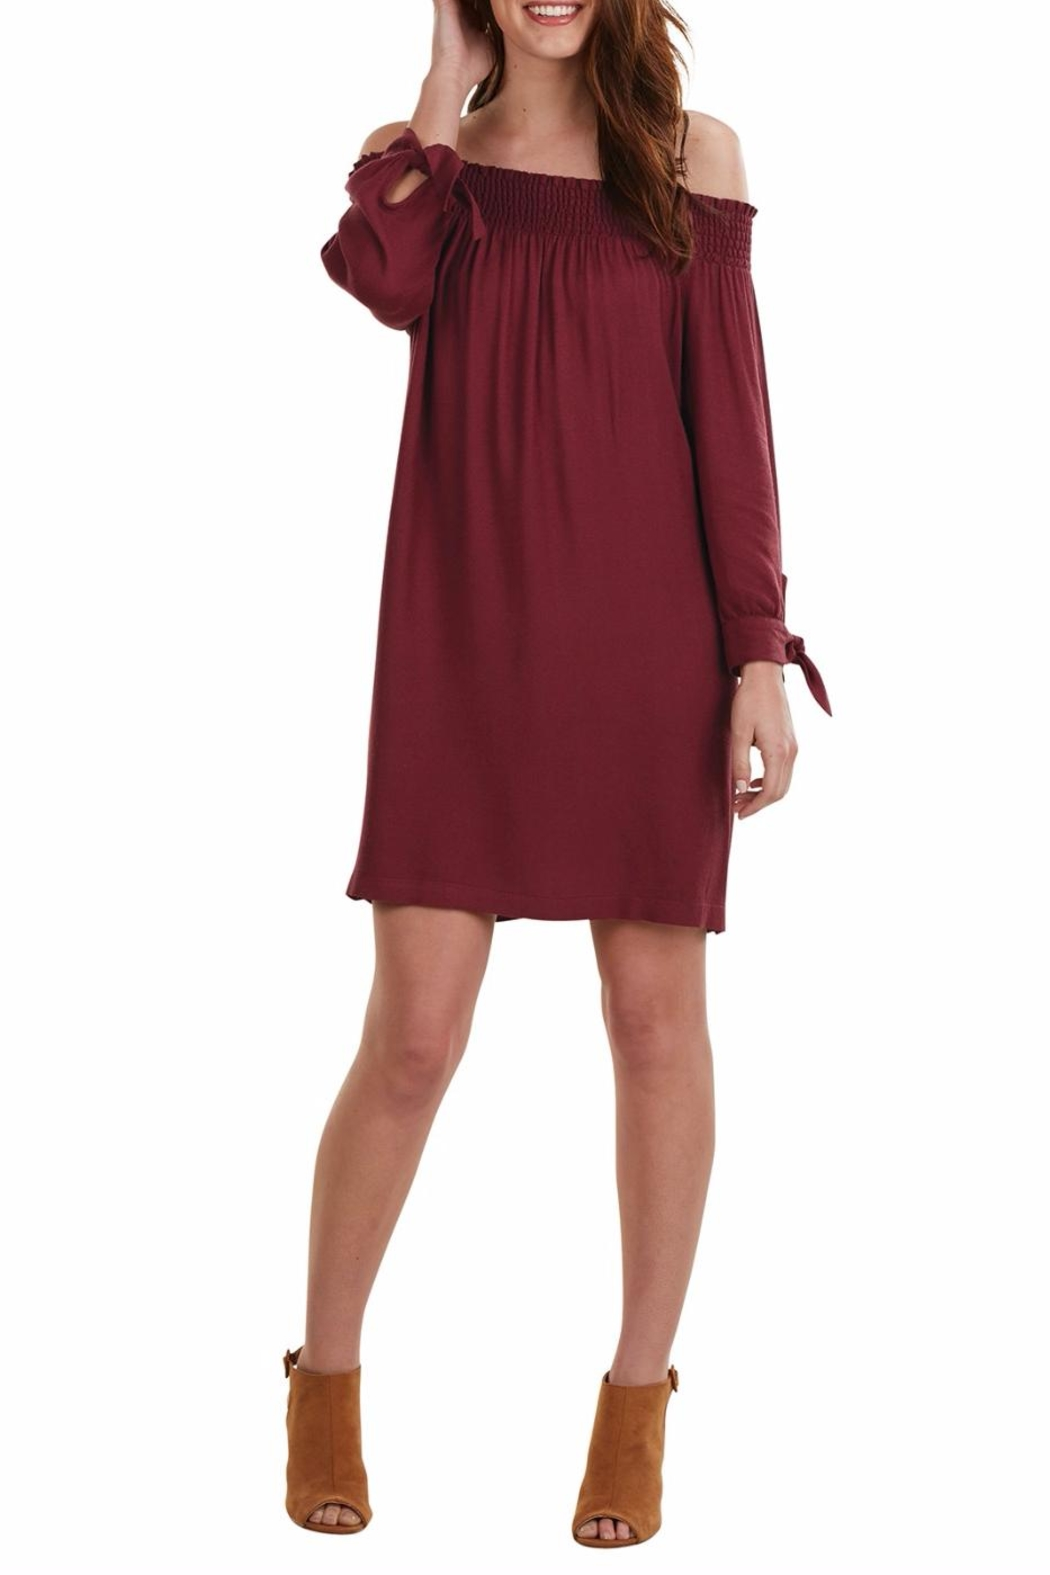 Mud Pie Elle Off Shoulder Dress - Main Image